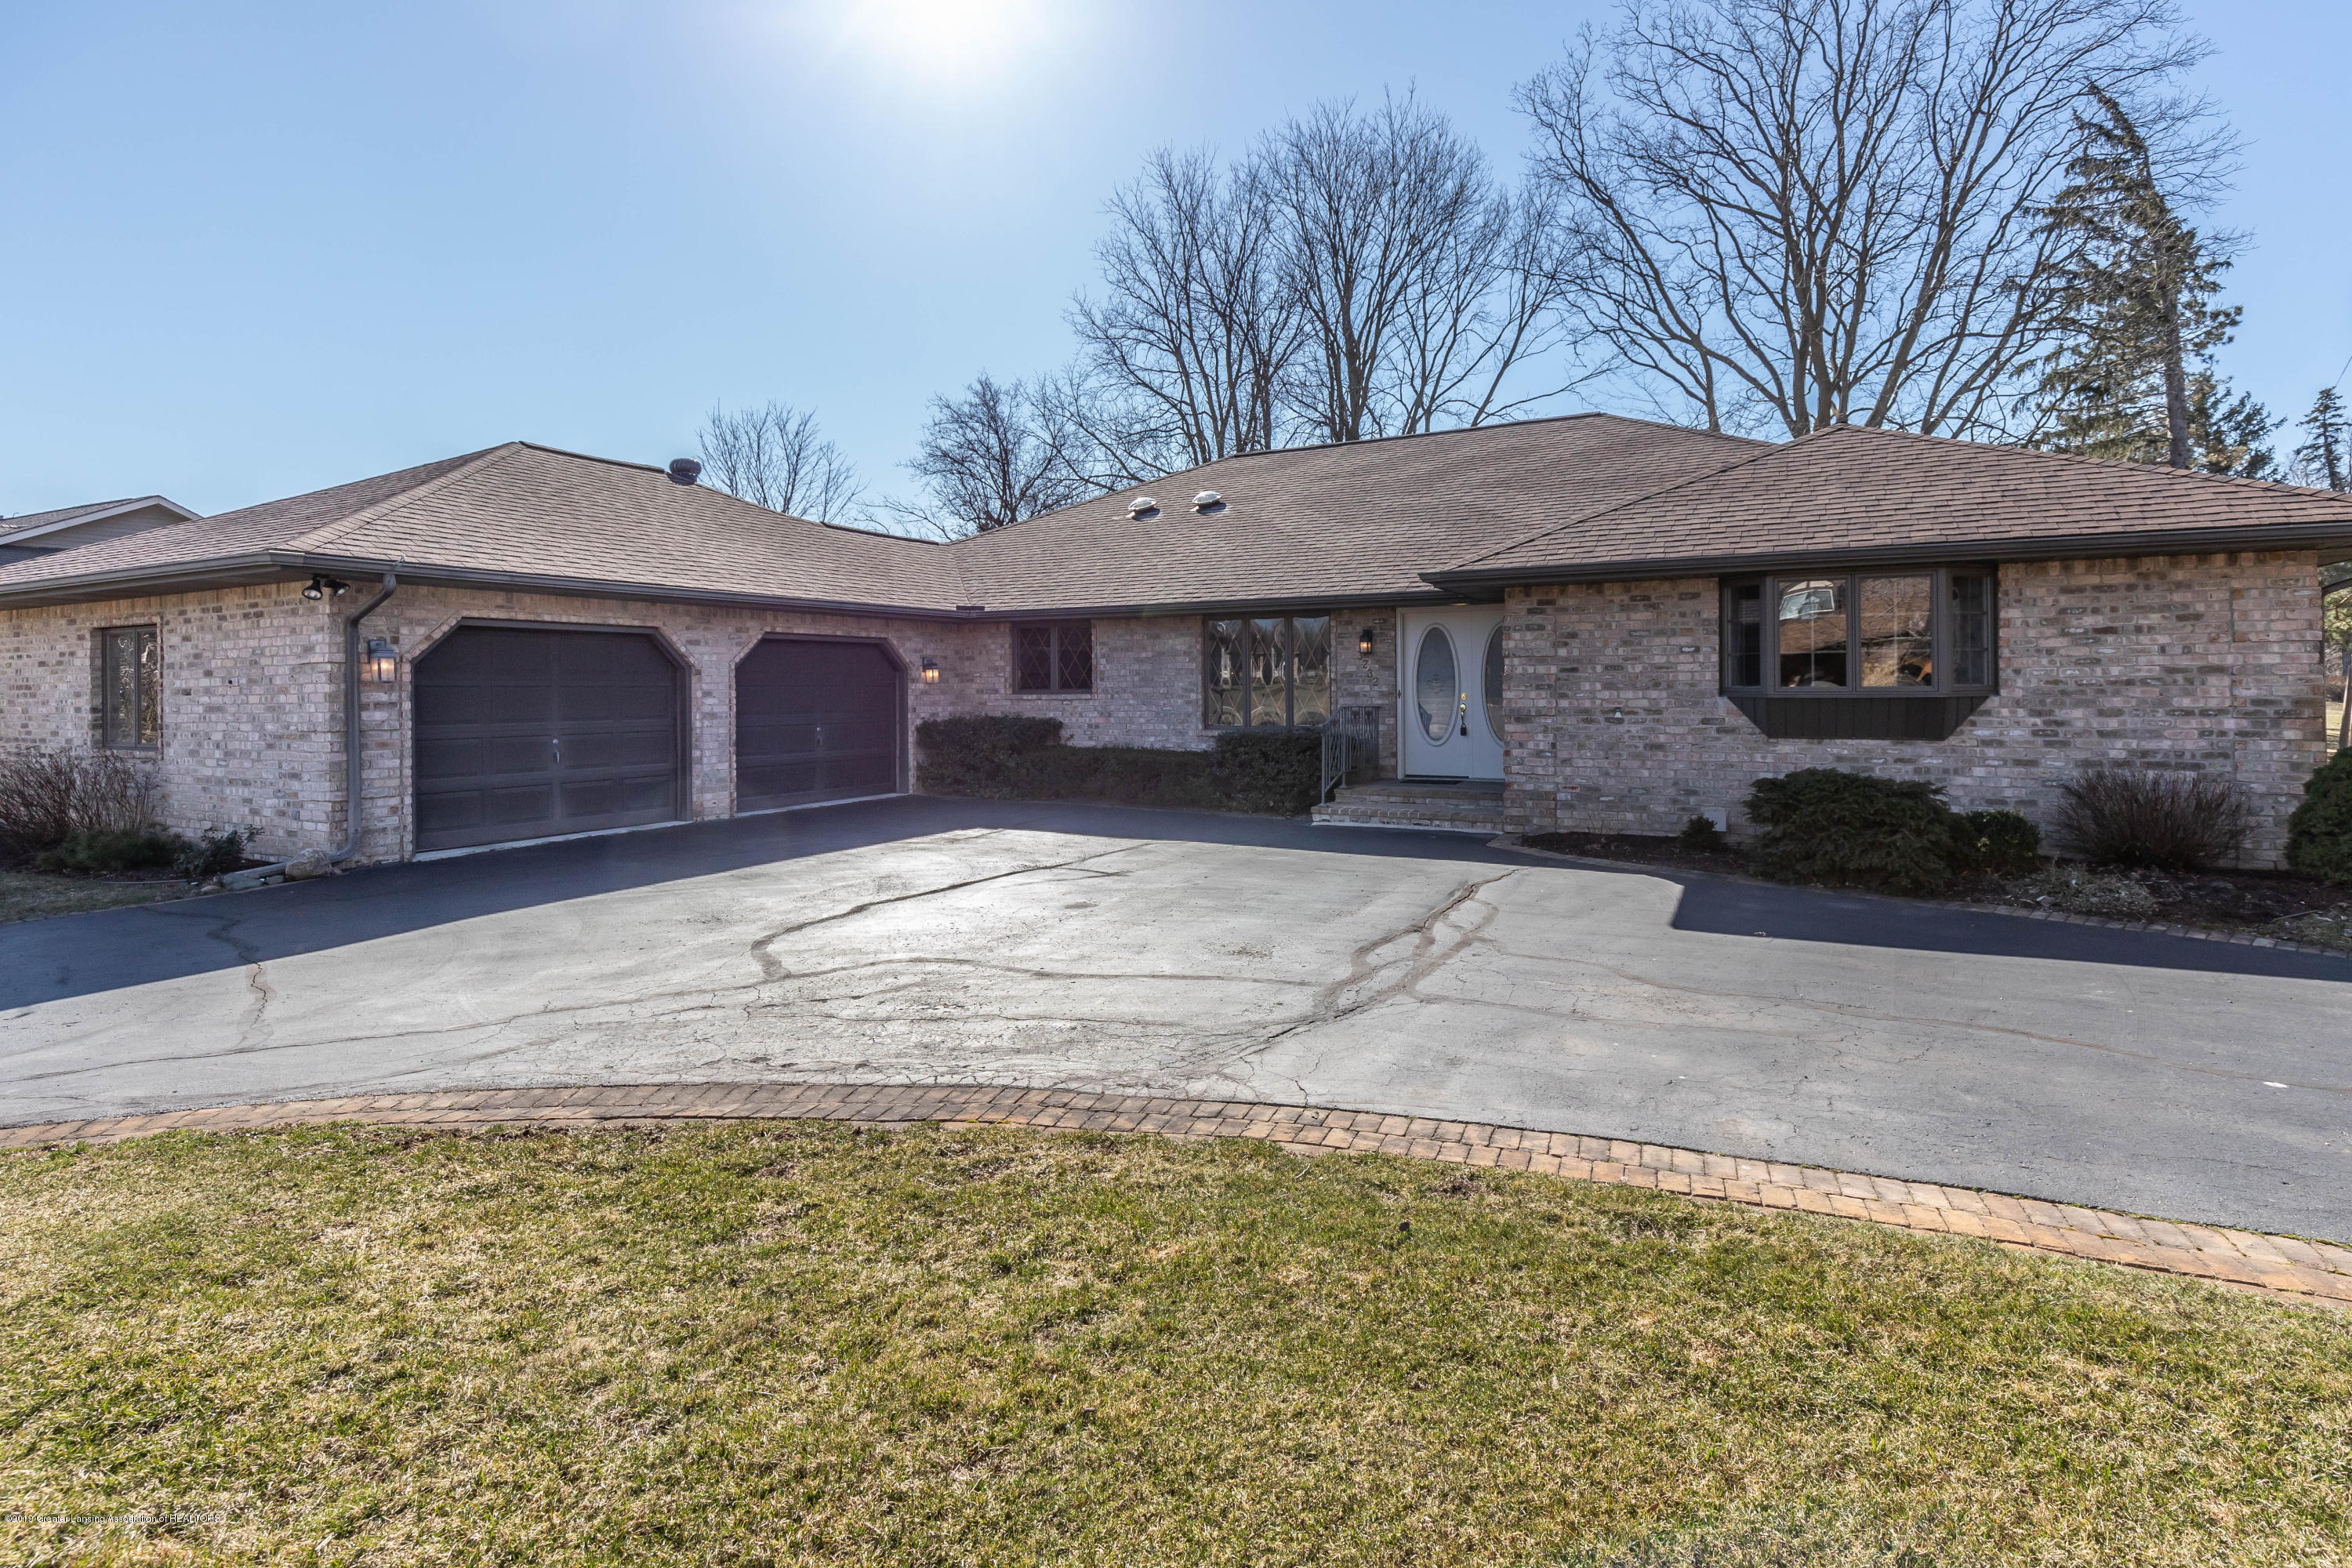 3232 E Broadmoor Dr - broadmoorfront2 (1 of 1) - 1